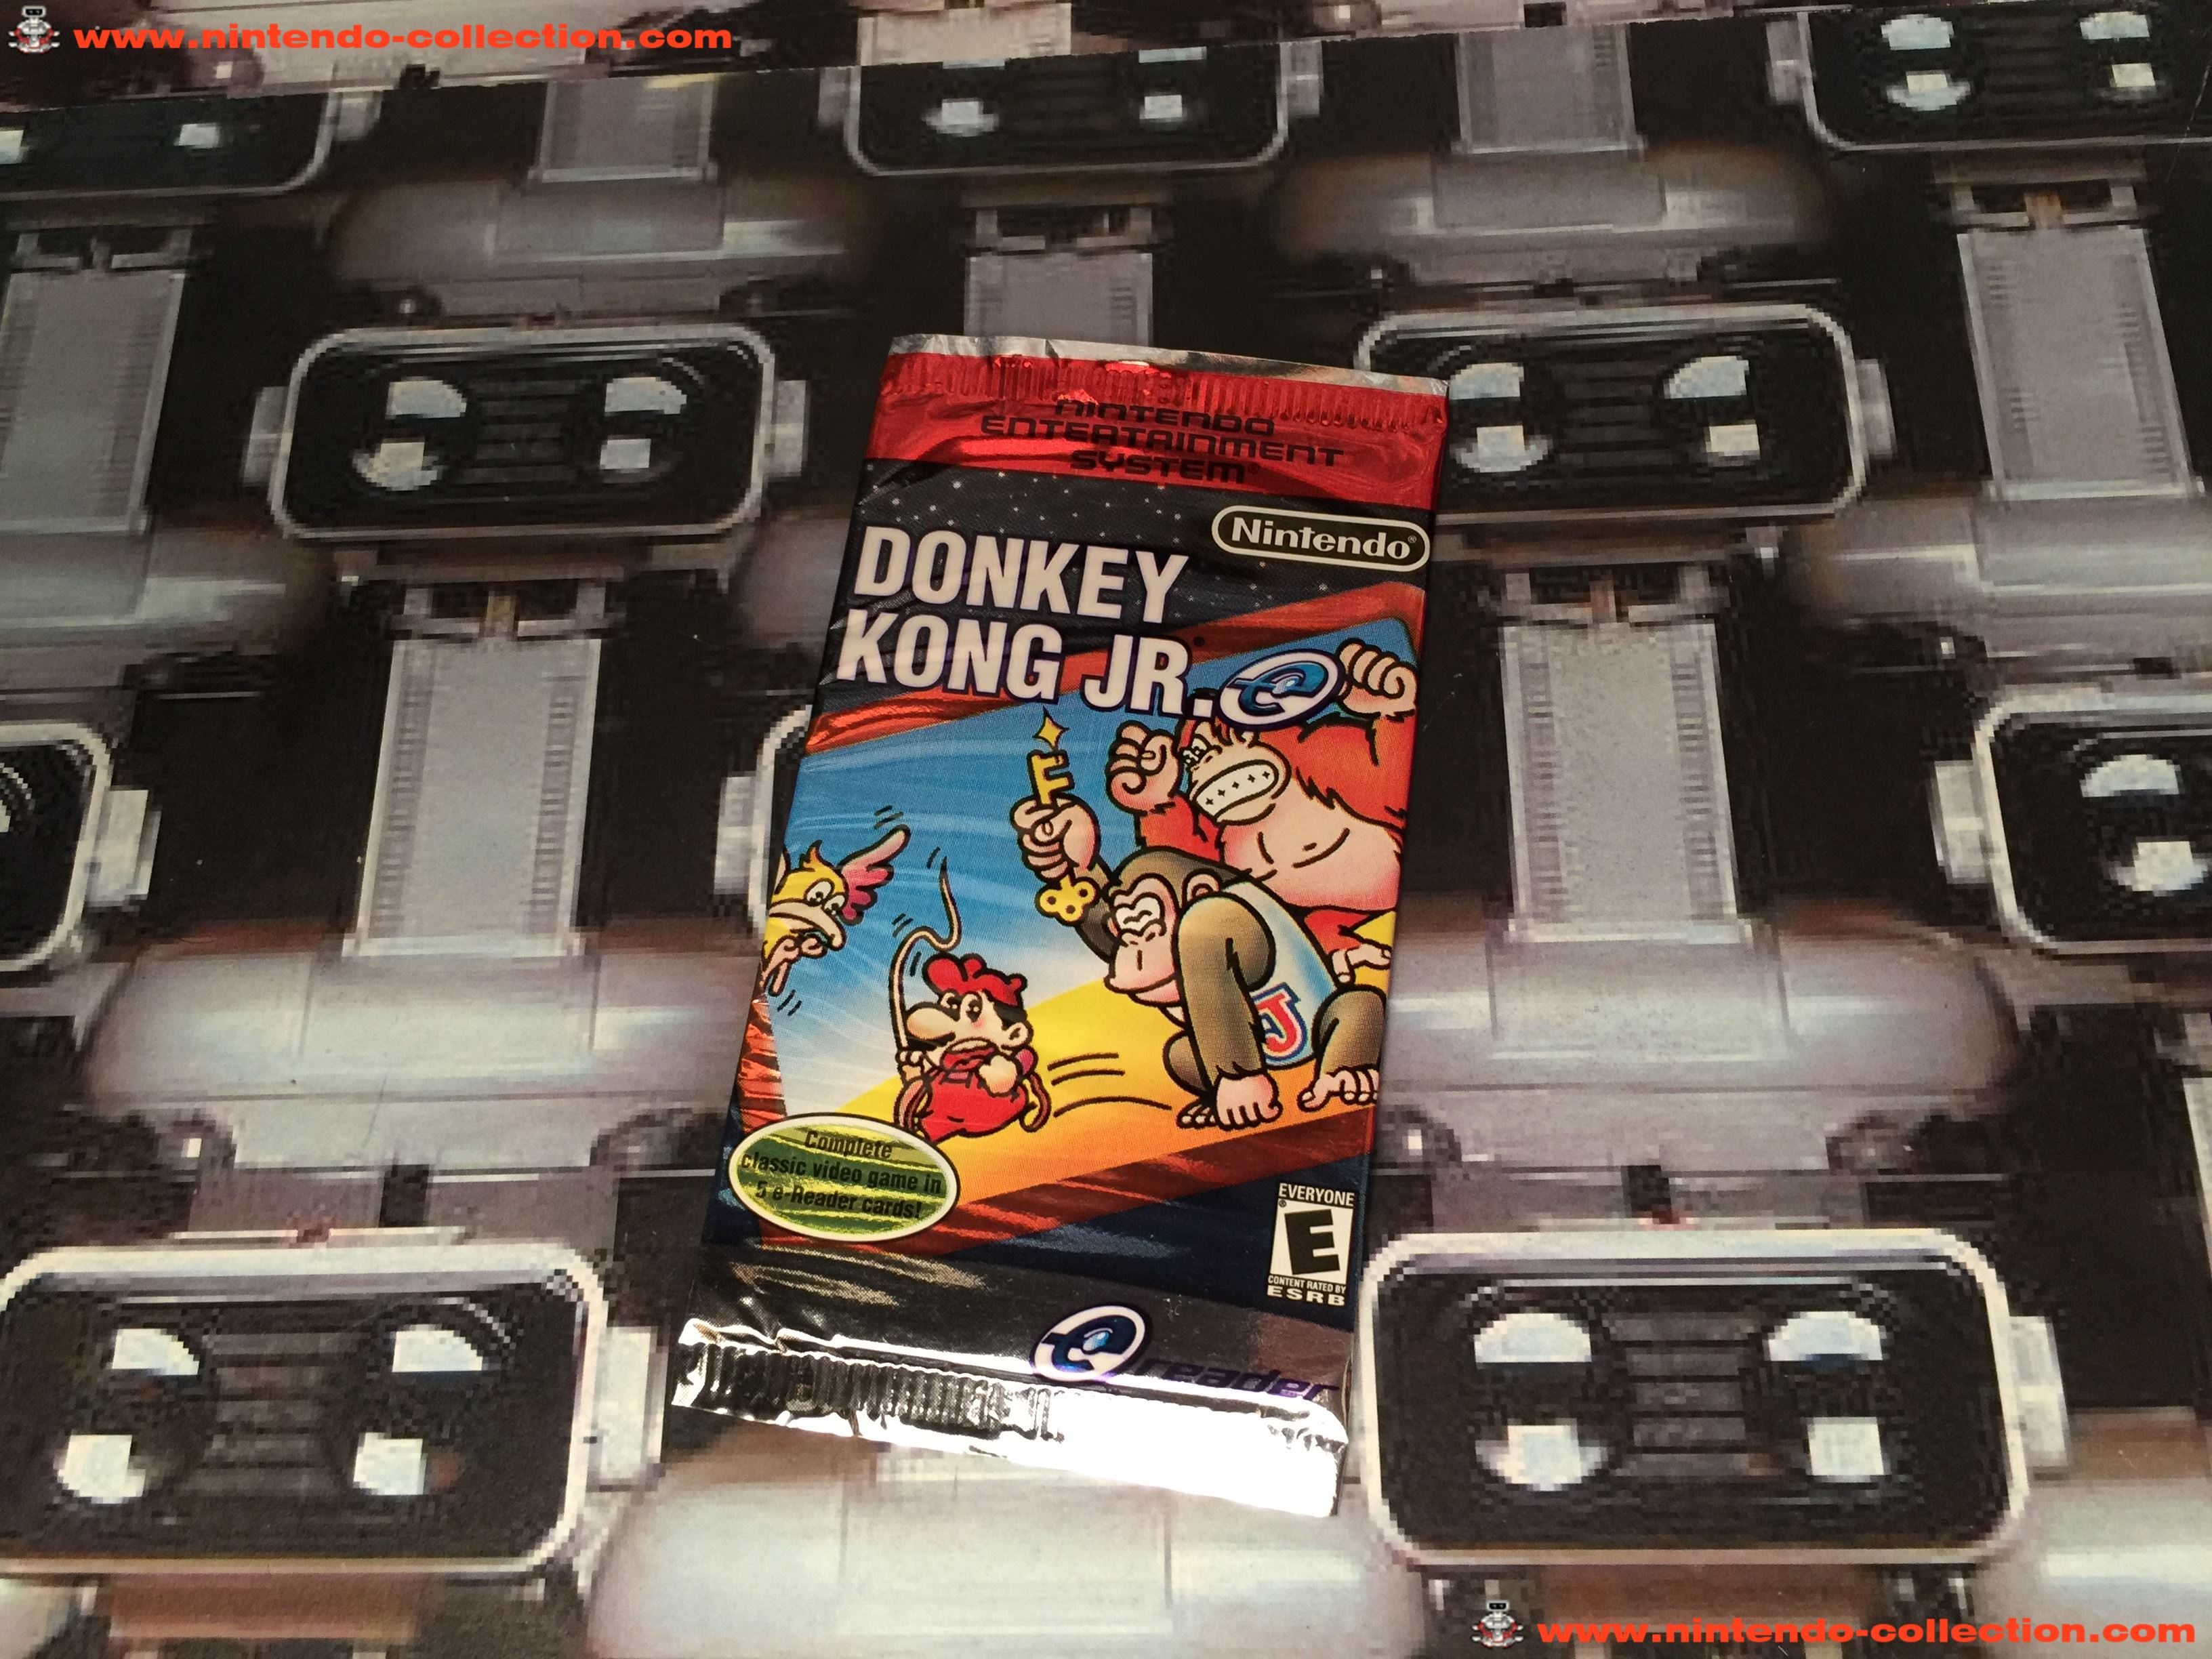 www.nintendo-collection.com - Gameboy Advance GBA Ereader E Reader Donkey Kong Jr Version US Ameriac